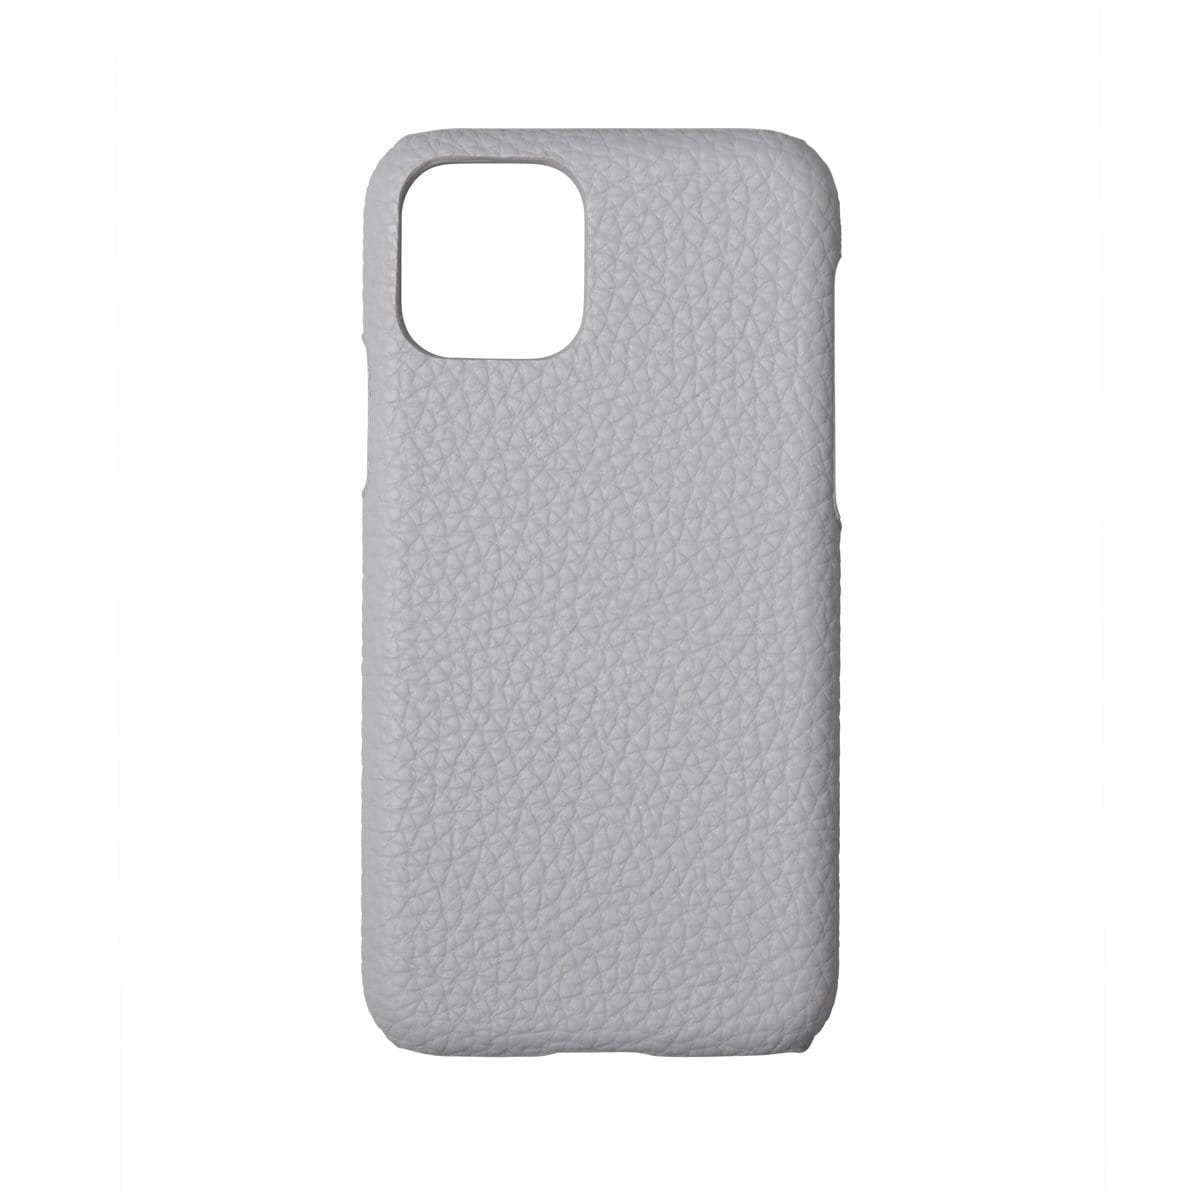 Parma Grey Phone Case (iPhone 11 Pro Max)